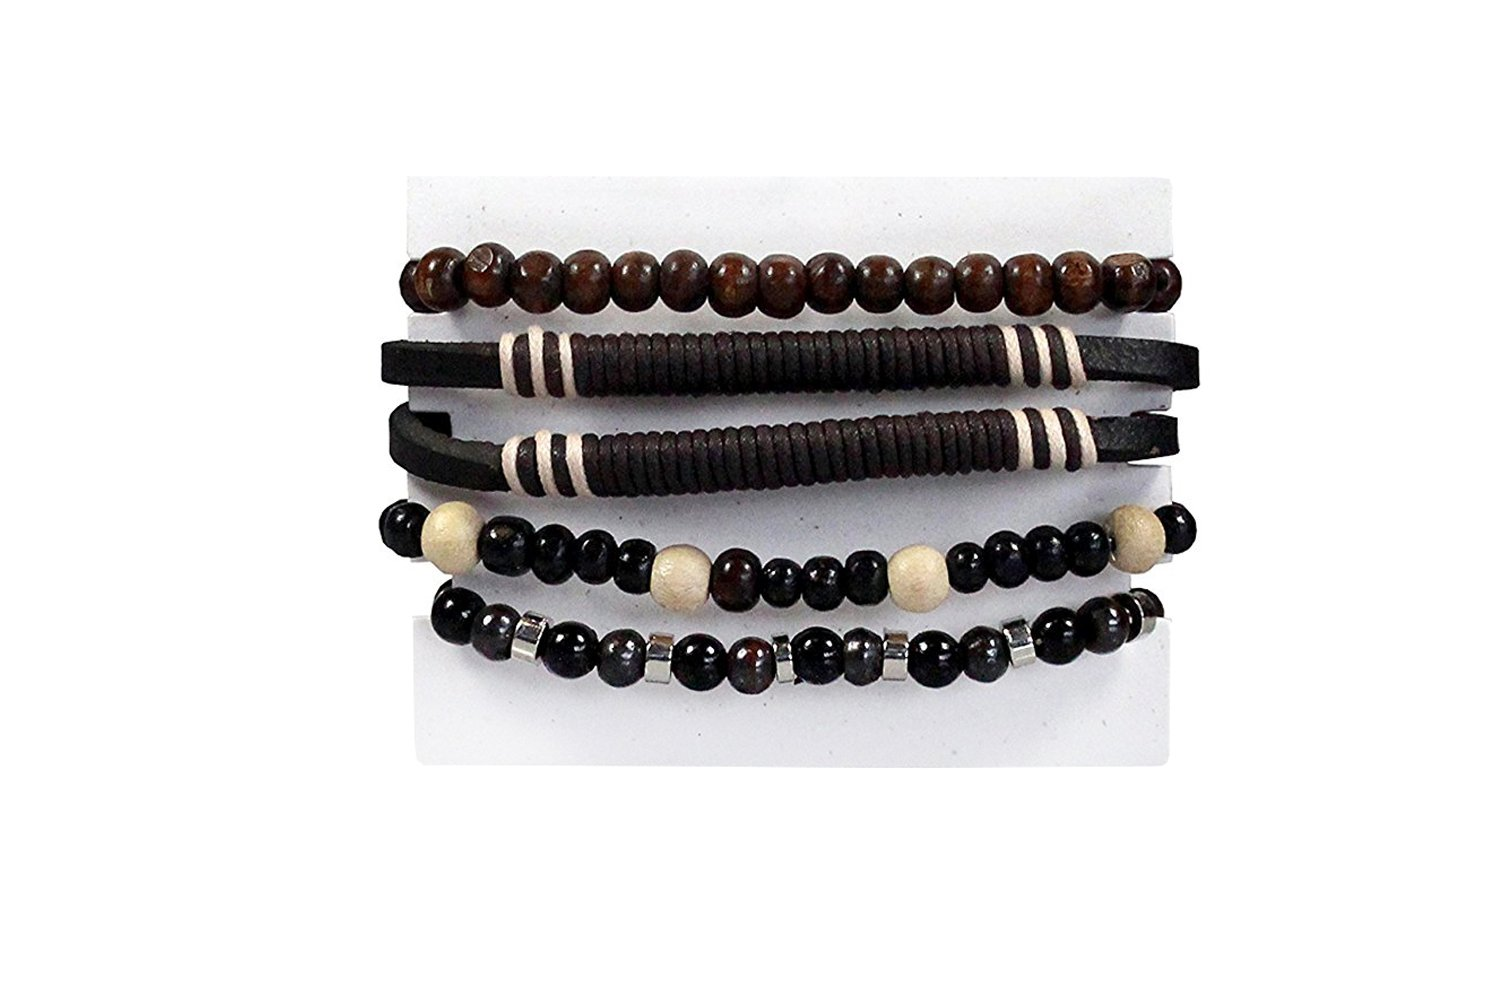 Mens Surfer Leather Bracelet Braided Boy Wristband Wrap Cord Bead Set In Handy Reusable GIiftbag CORDER LONDON LOOP5